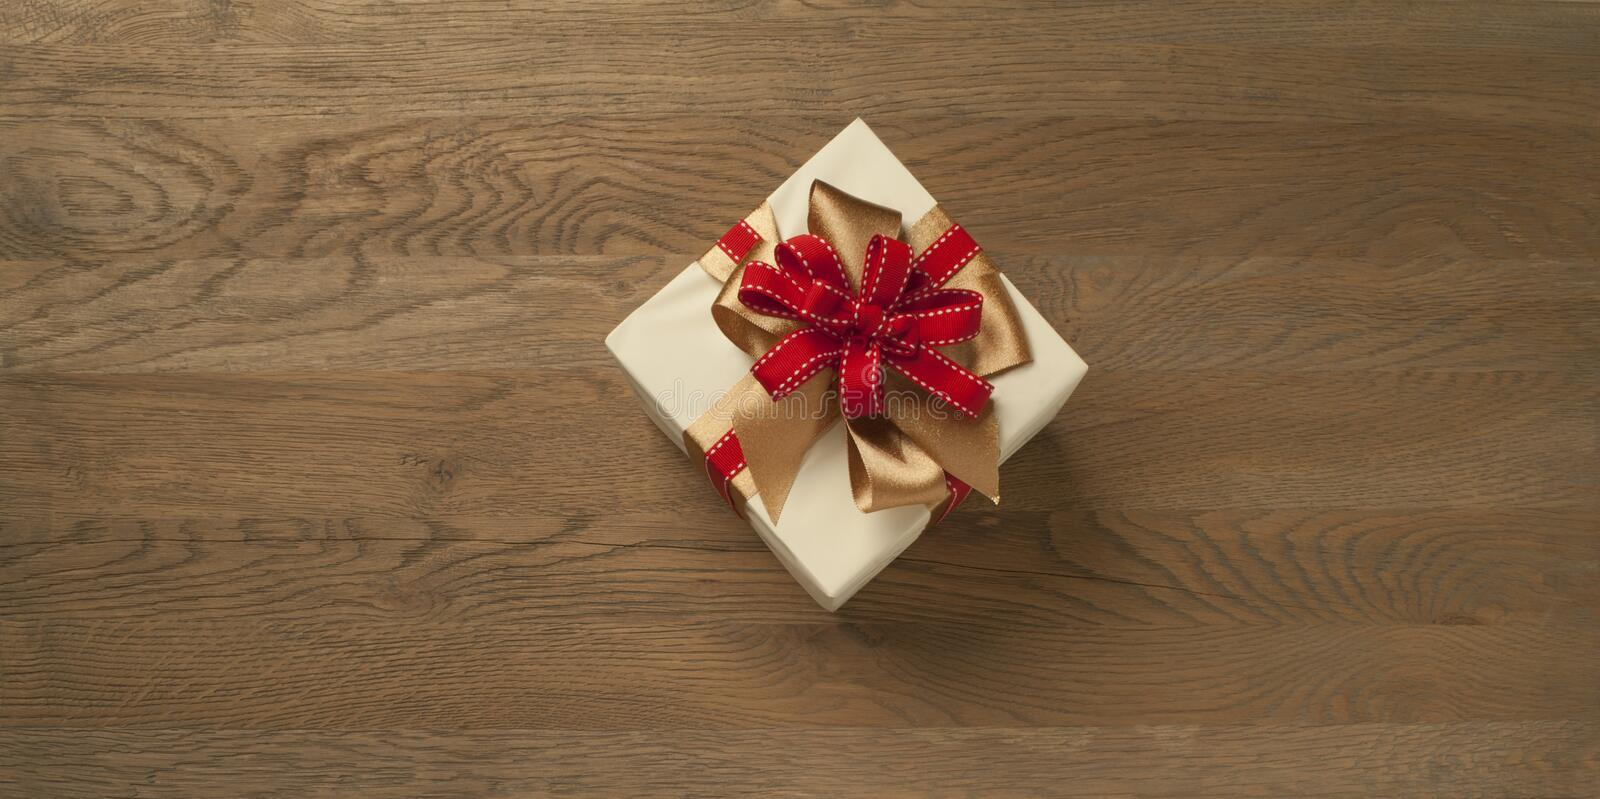 Christmas gift box tied with red and golden bow over a wooden table stock image